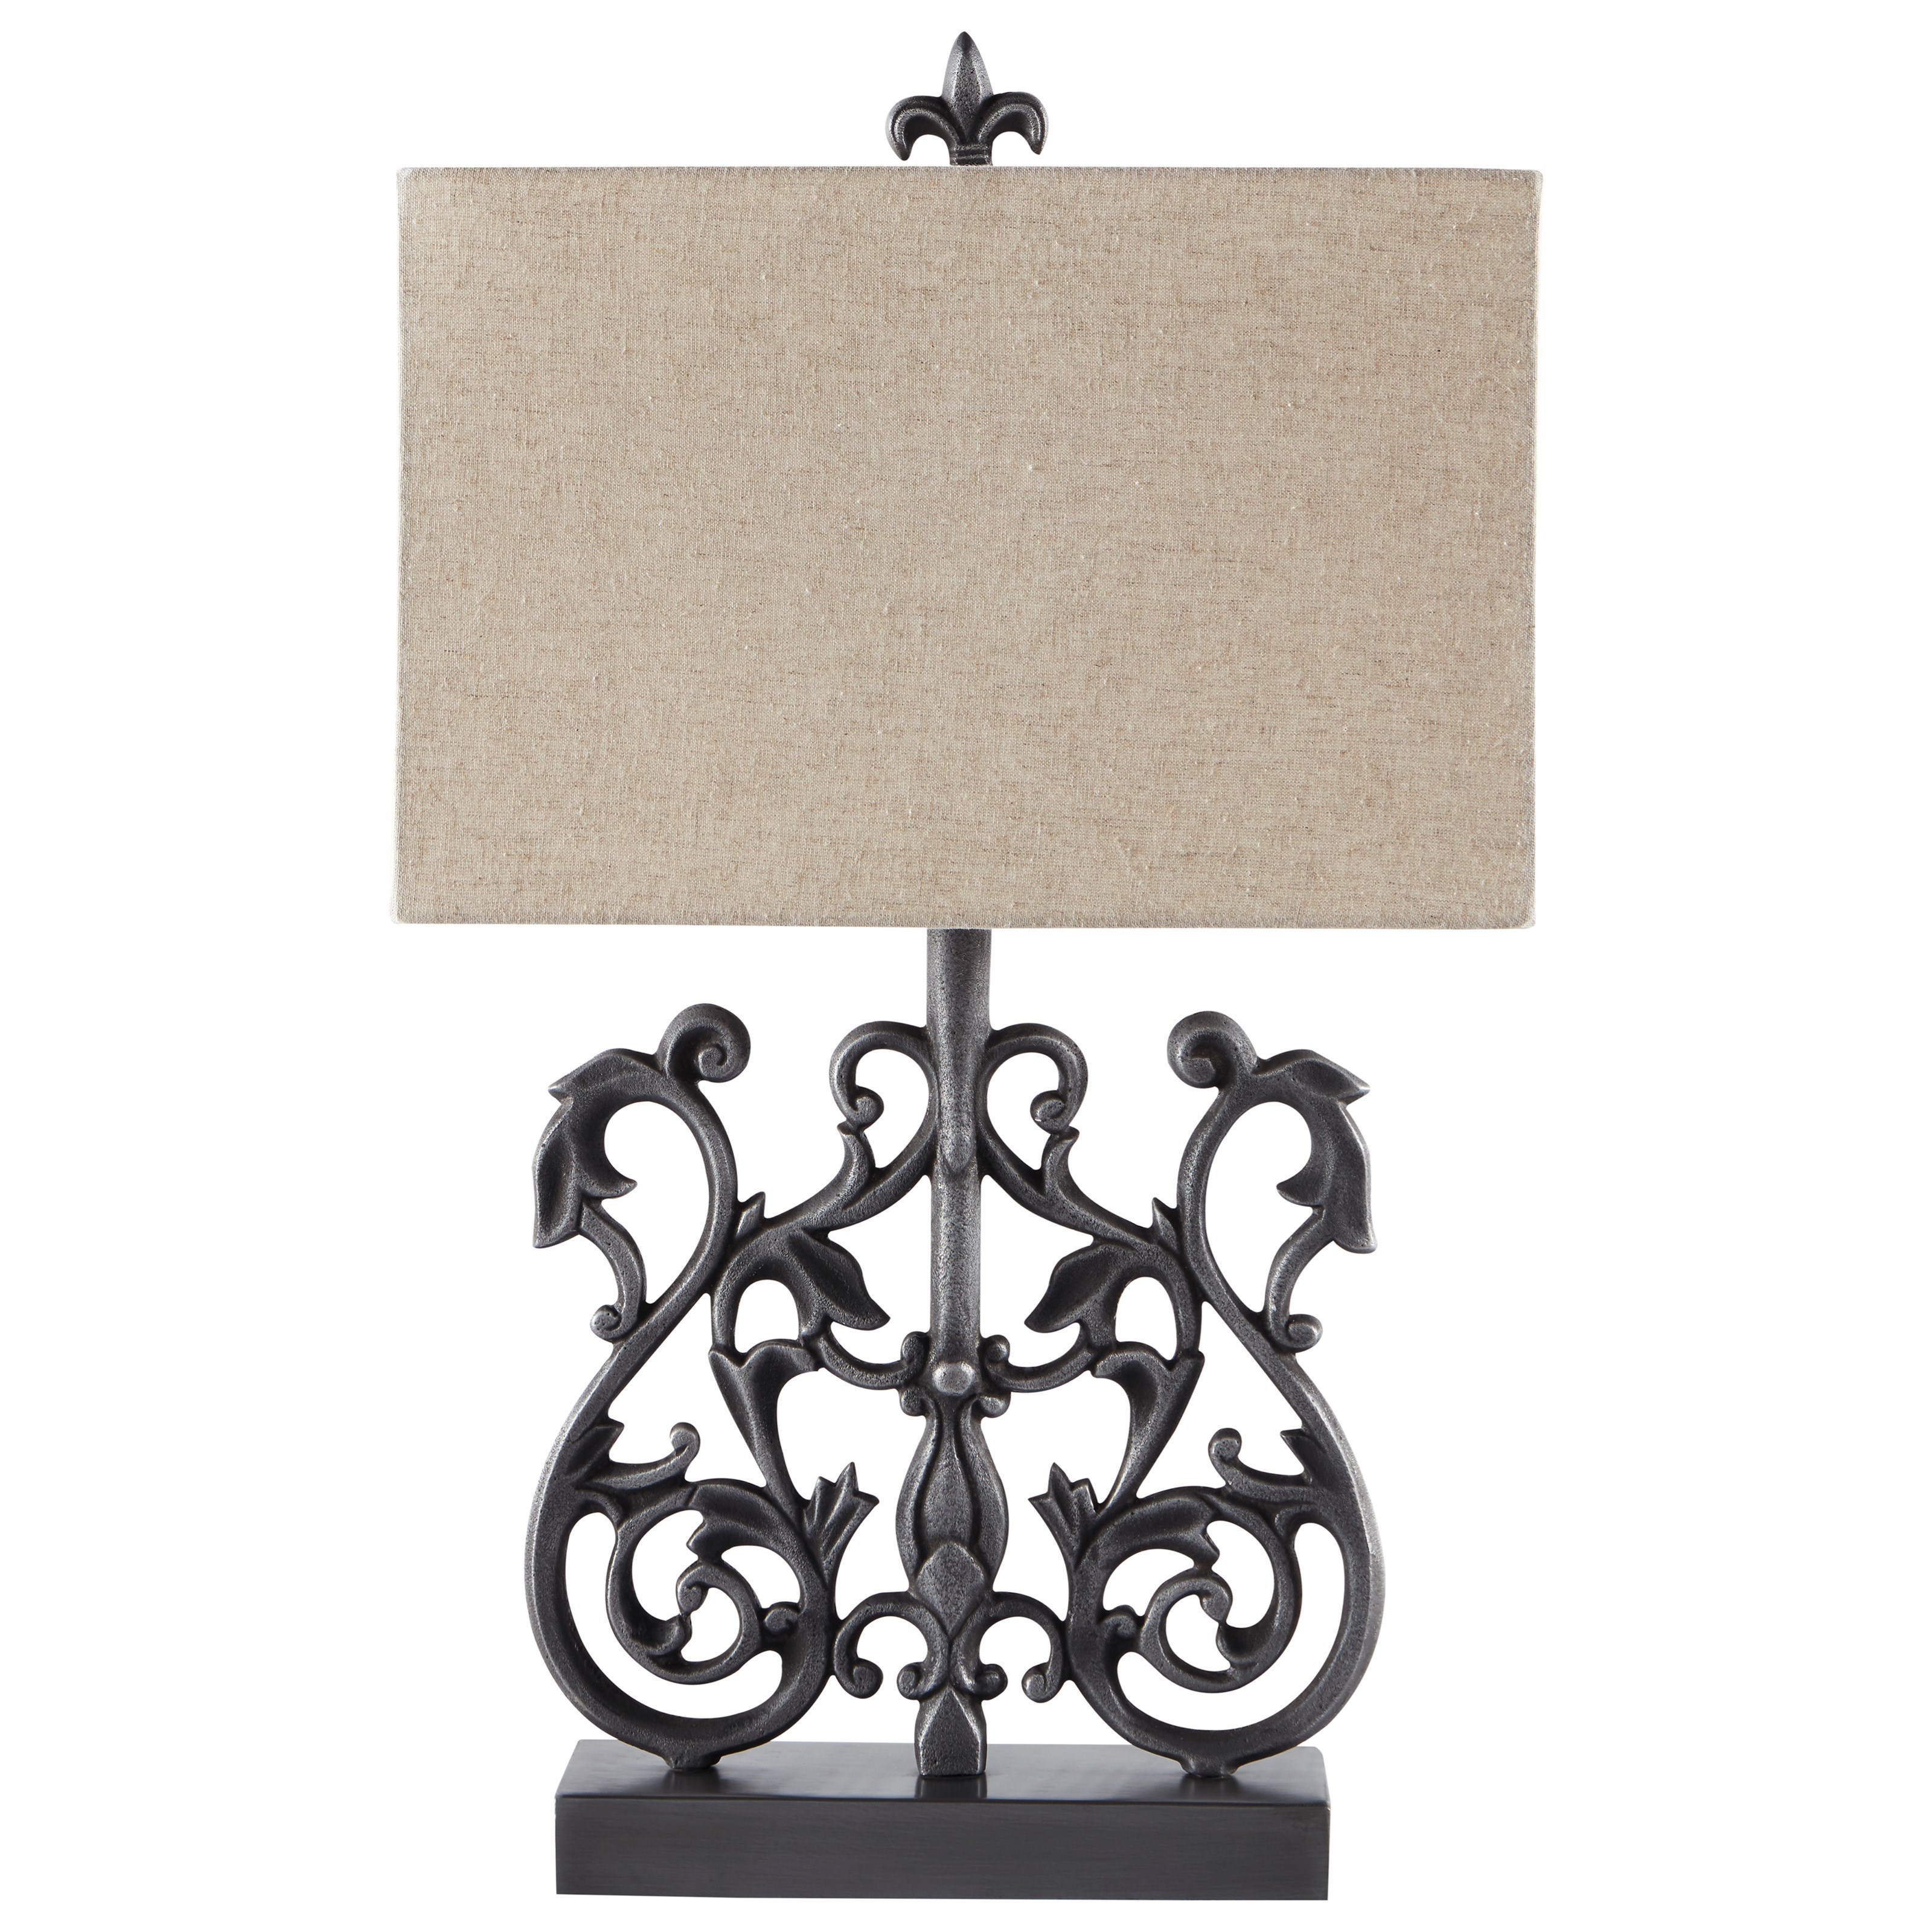 Lamps - Traditional Classics Capper Antique Silver Metal Table Lamp by Signature at Walker's Furniture